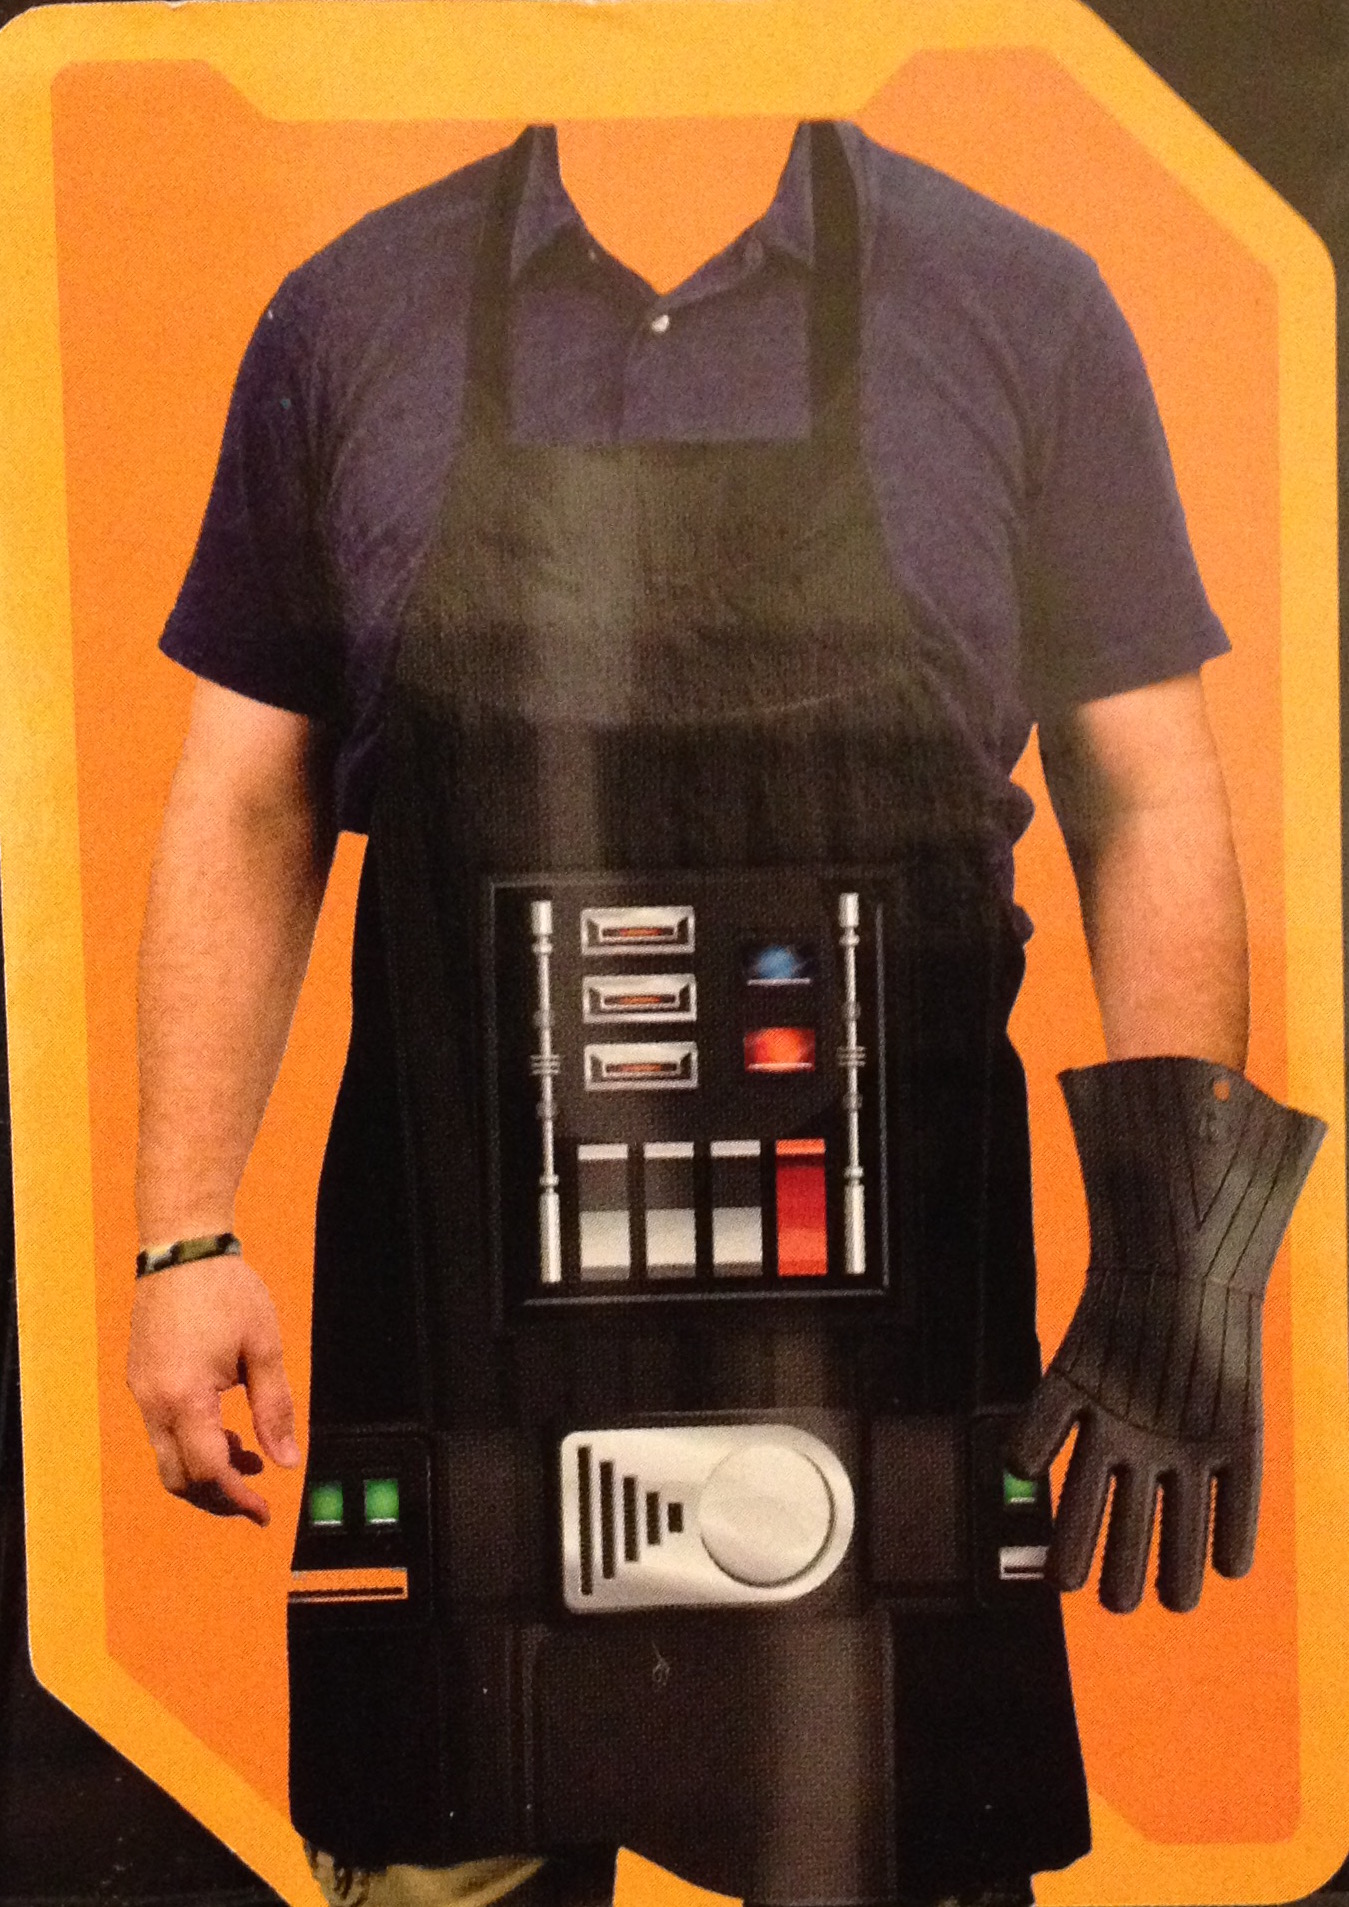 Star Wars - Grembiule e replica guanto - Darth Vader - Apron and replica oven mitt